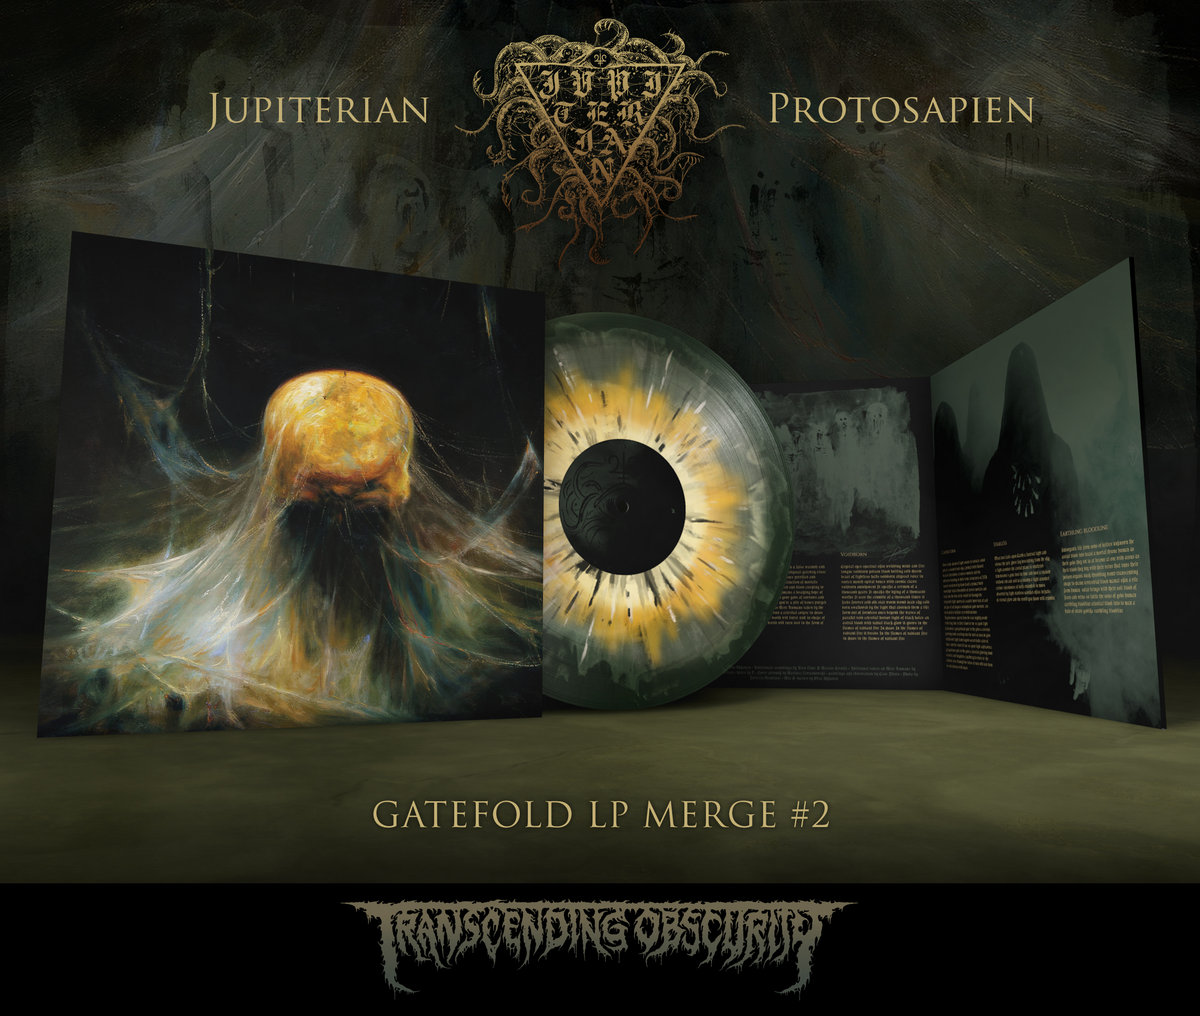 JUPITERIAN - Protosapien Gatefold LP with Sandalwood Fragrance (Merge #2)